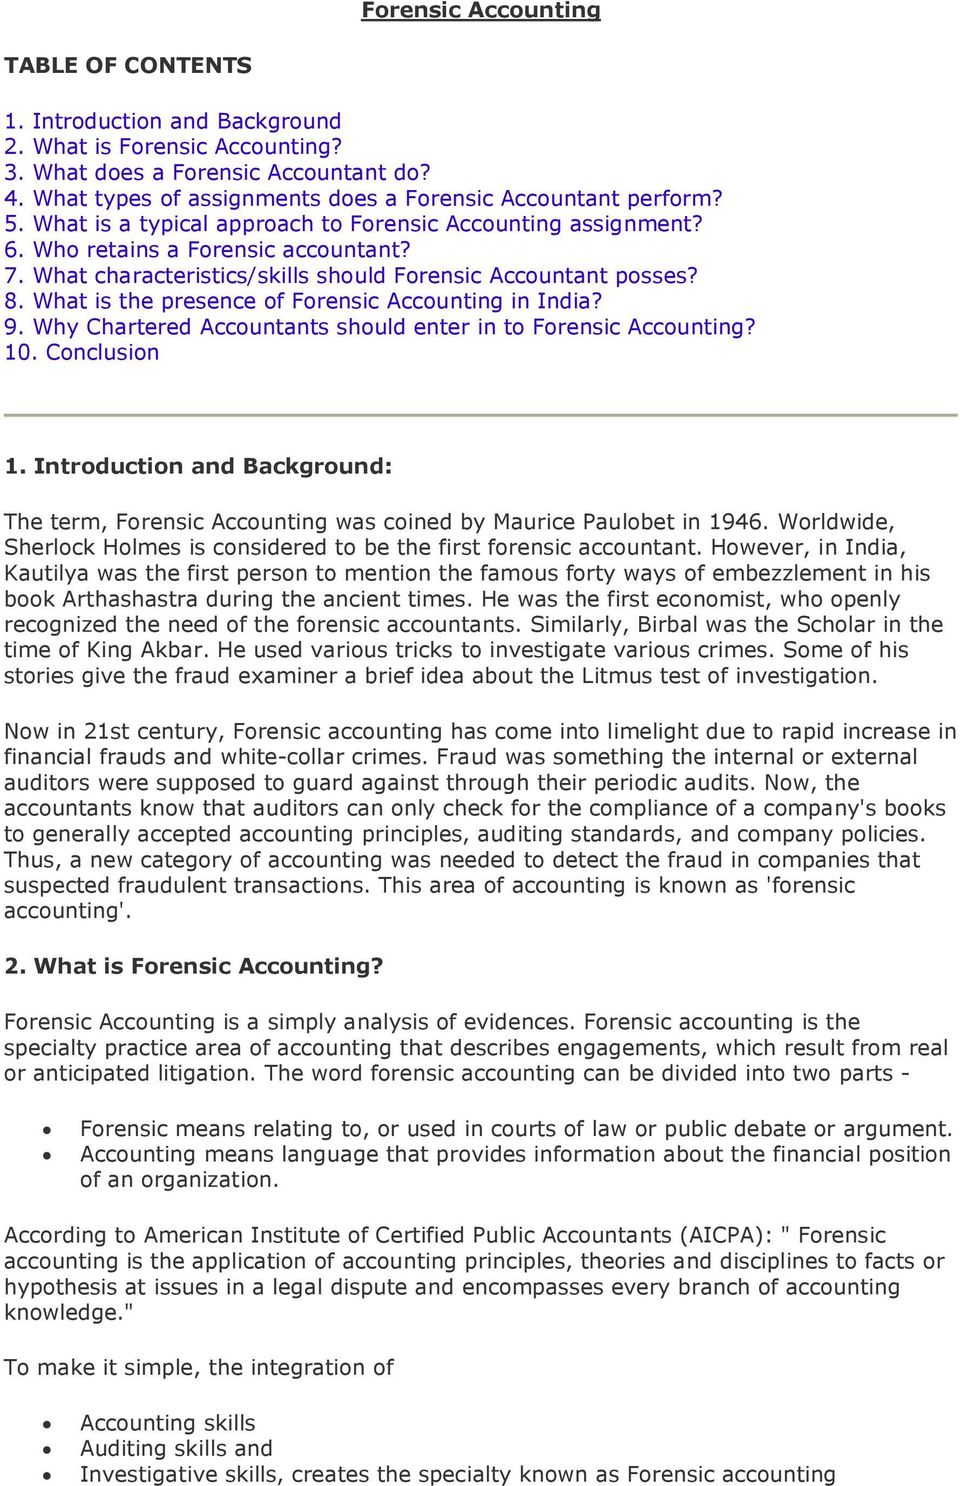 forensic accountant resume sample accounting waiver of liability